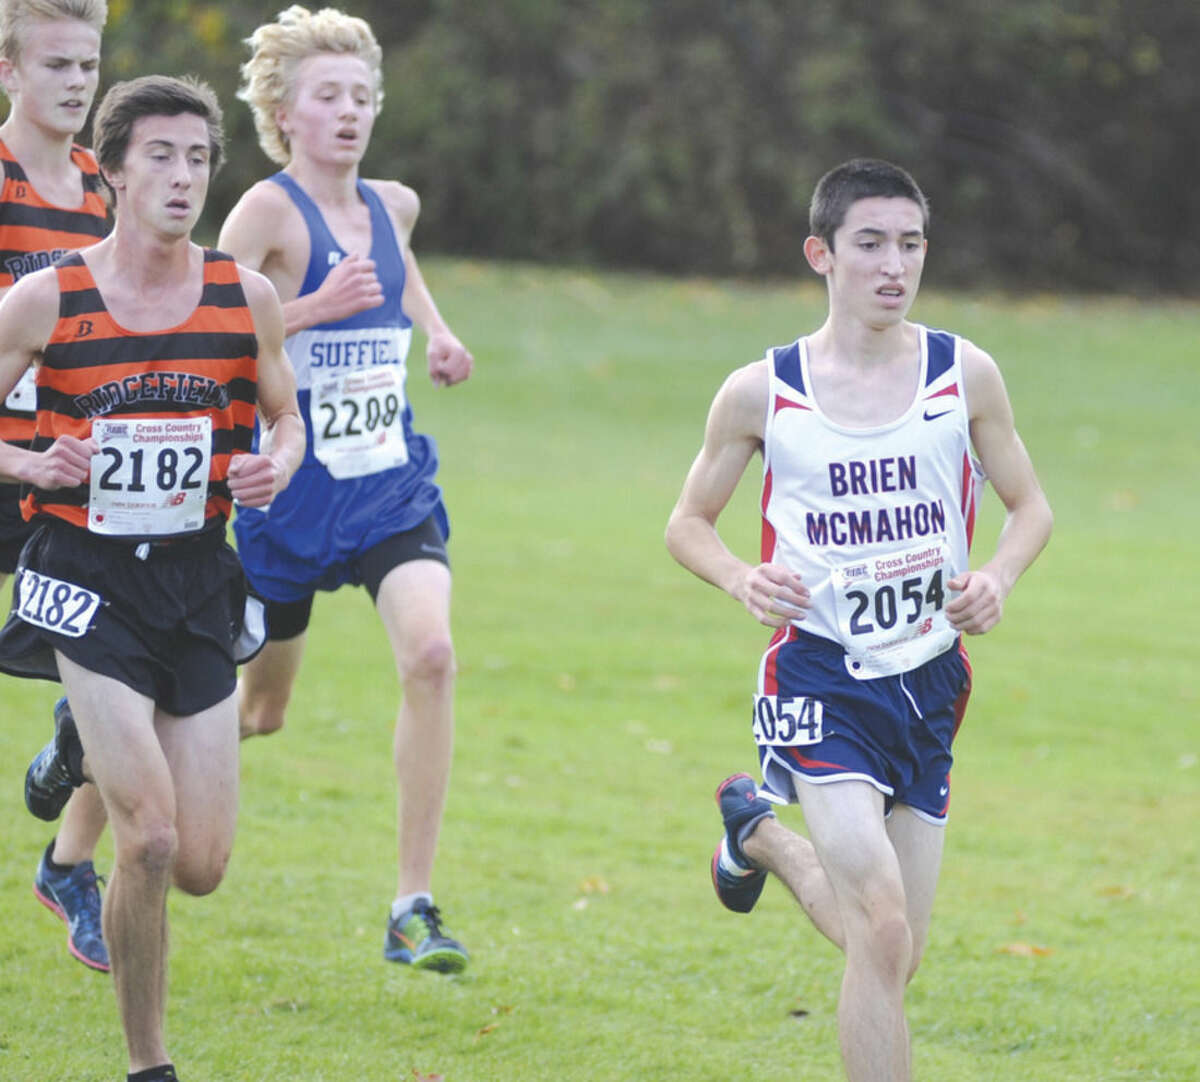 Hour photo/John Nash Brien McMahon's Eric van der Els competes in last year's State Open cross country championship. The Senators junior is one of the region's leading returning runners.